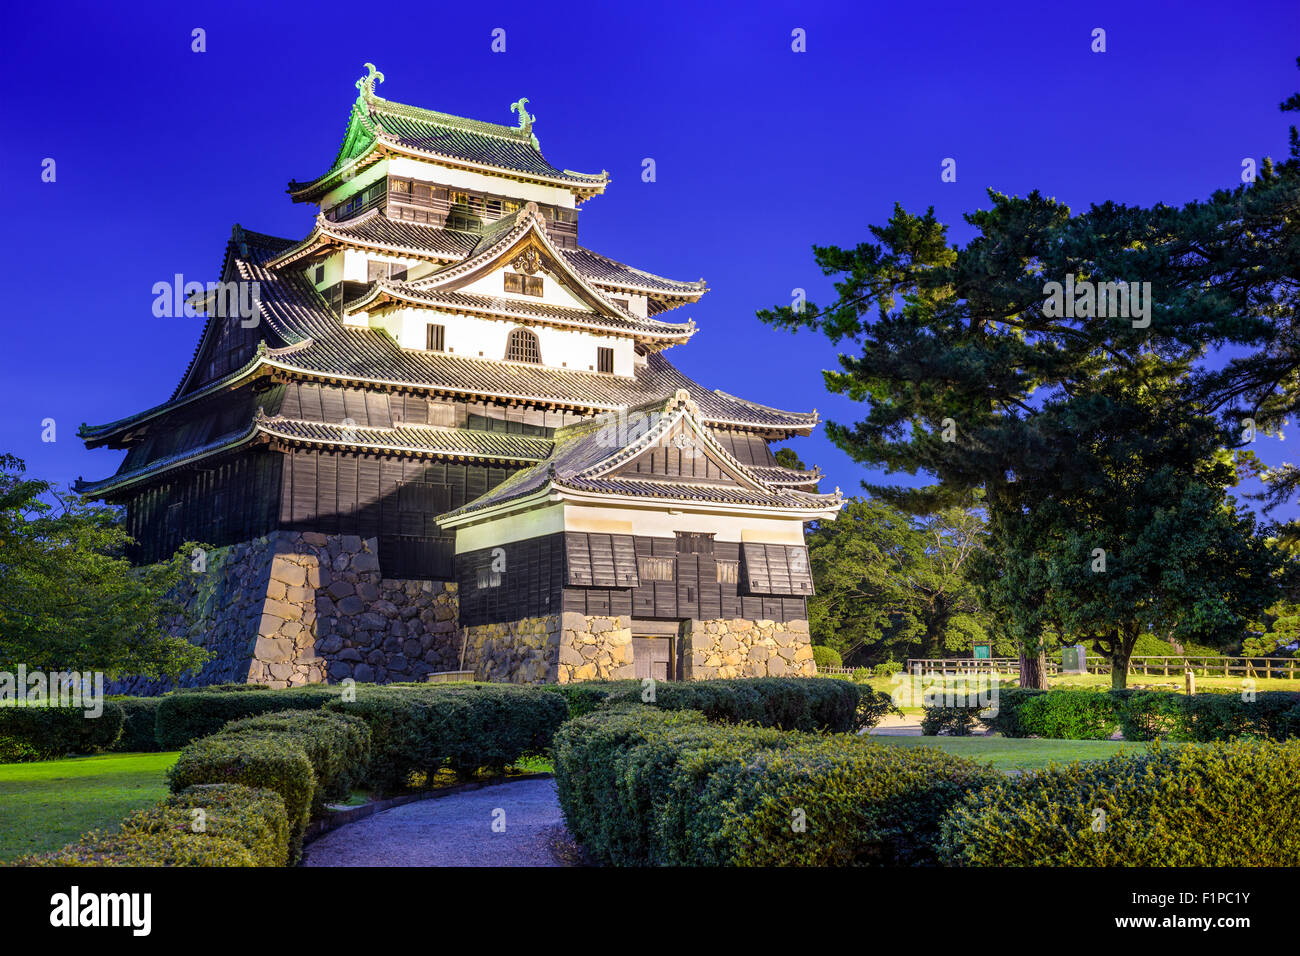 Matsue, Japan at the castle. The castle has one of the few original castle keeps in the country. - Stock Image